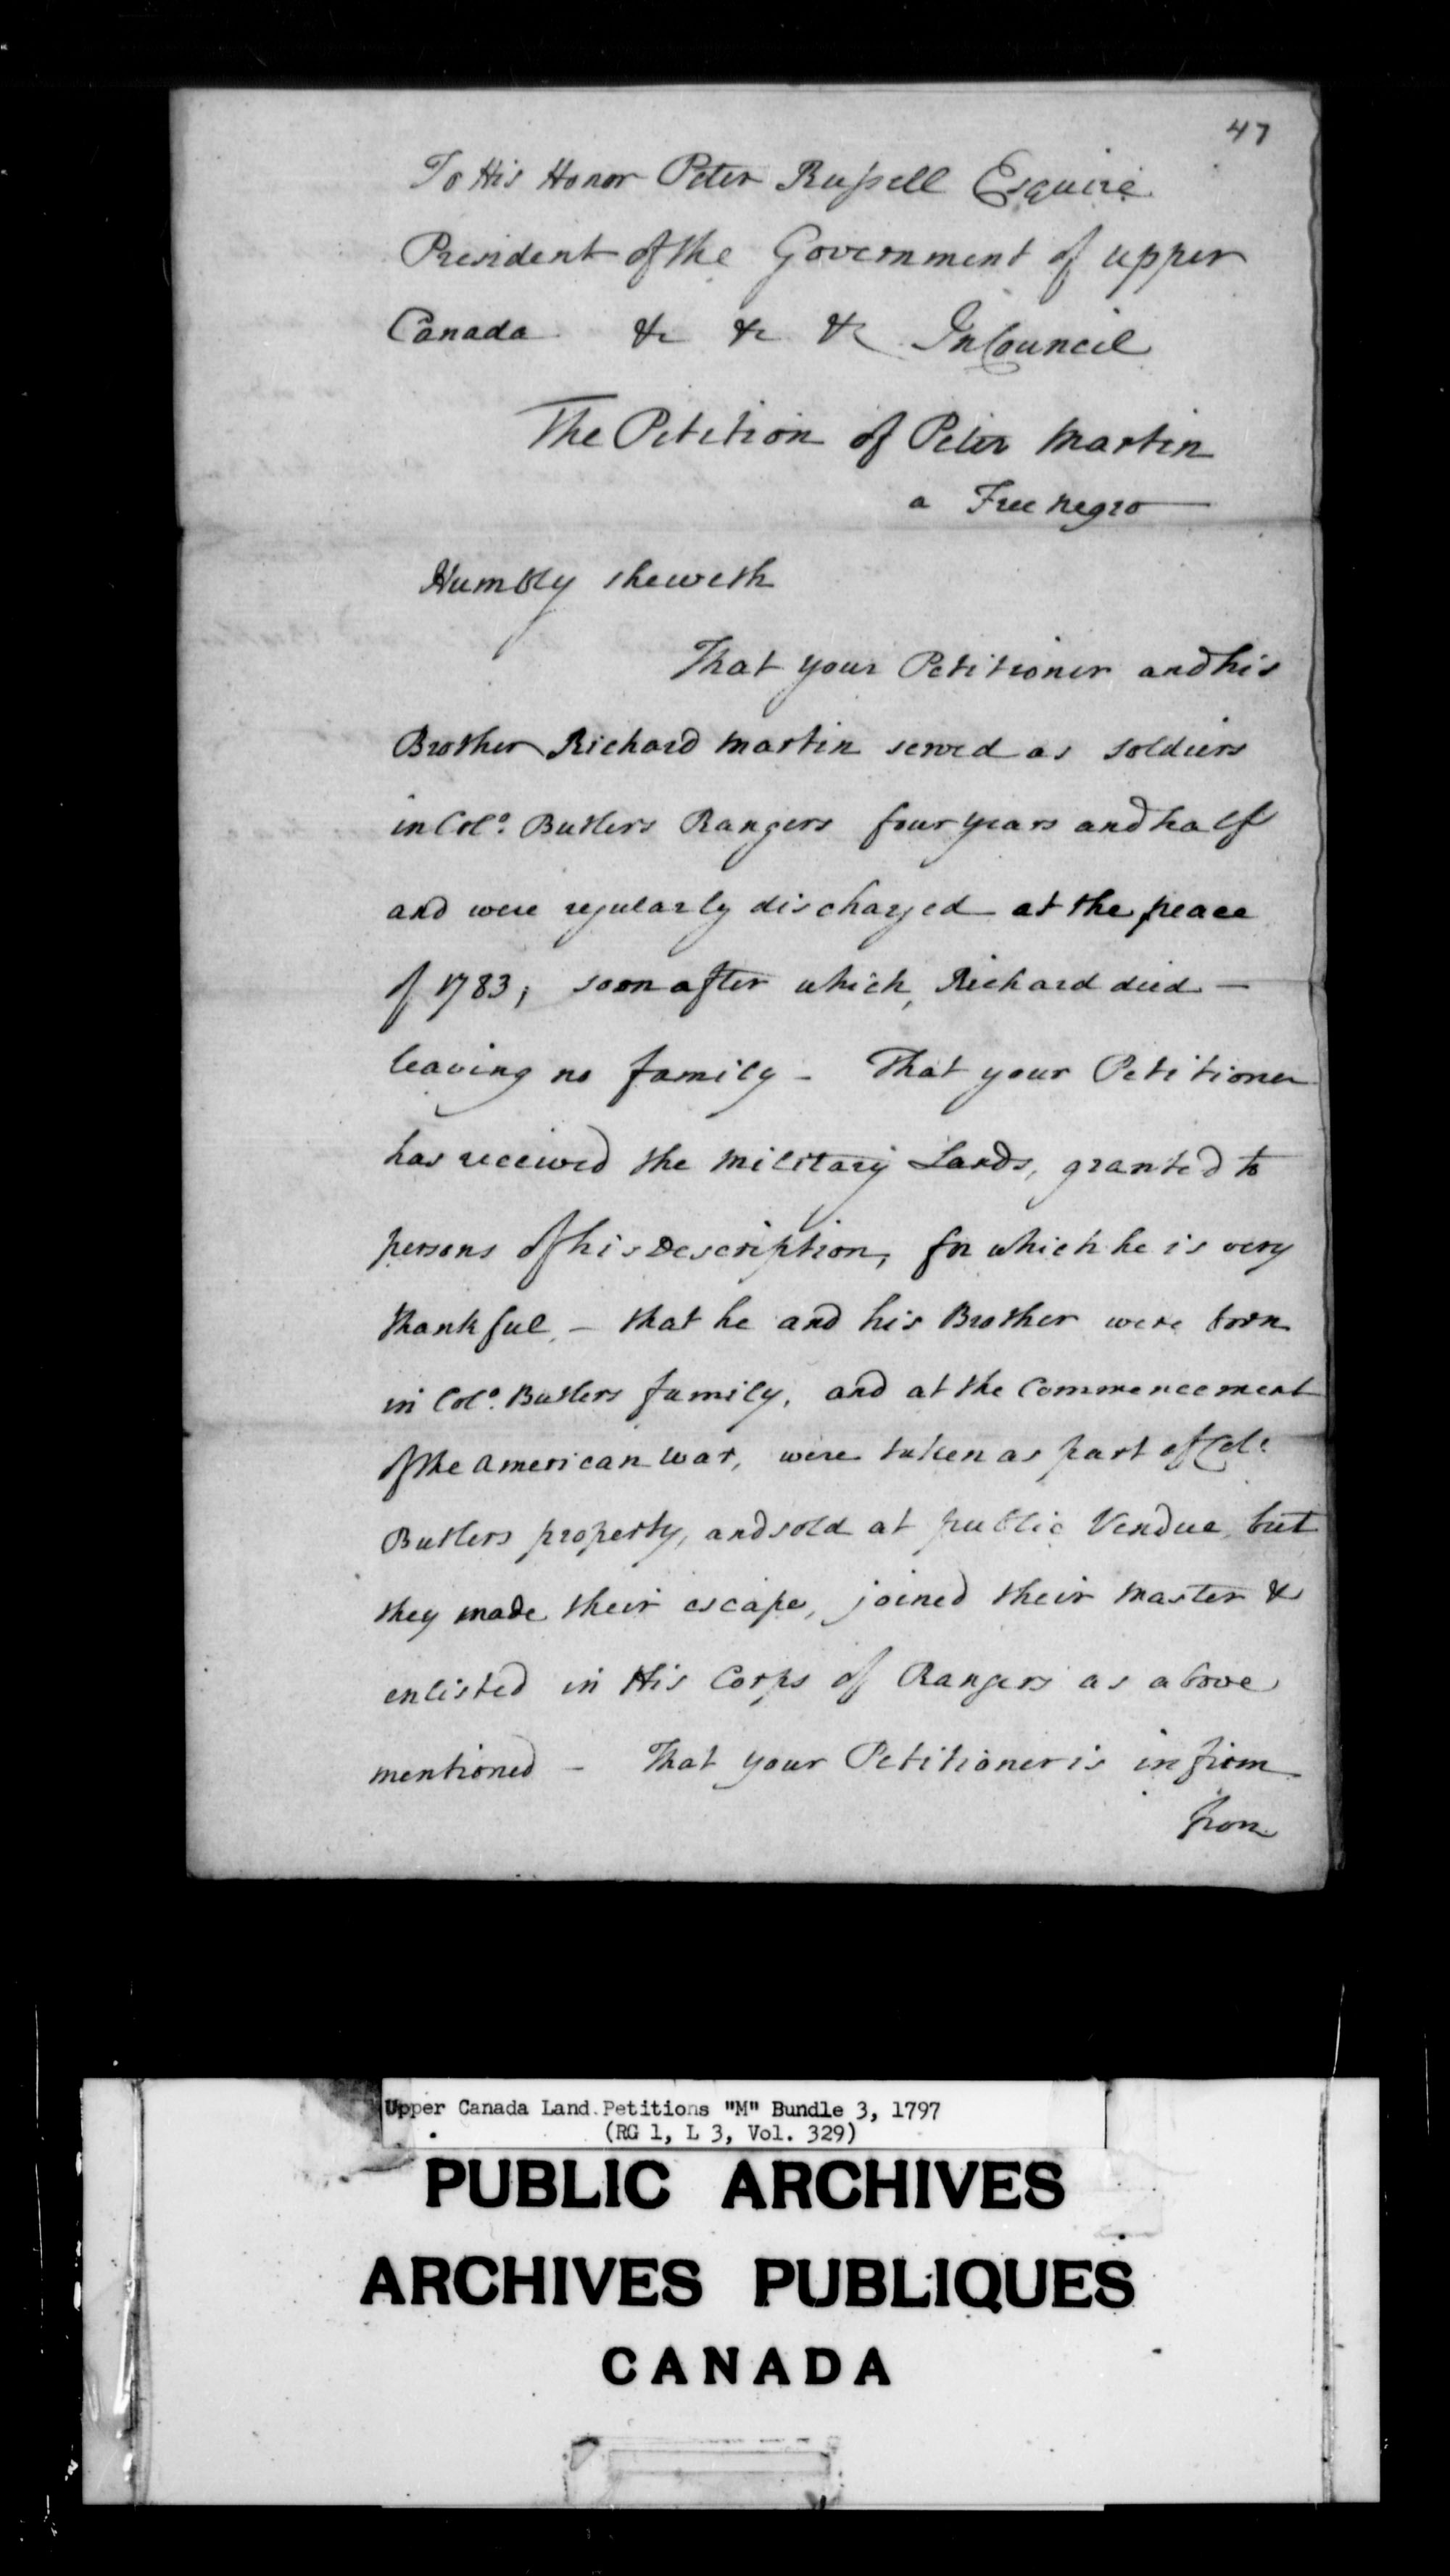 Title: Upper Canada Land Petitions (1763-1865) - Mikan Number: 205131 - Microform: c-2192